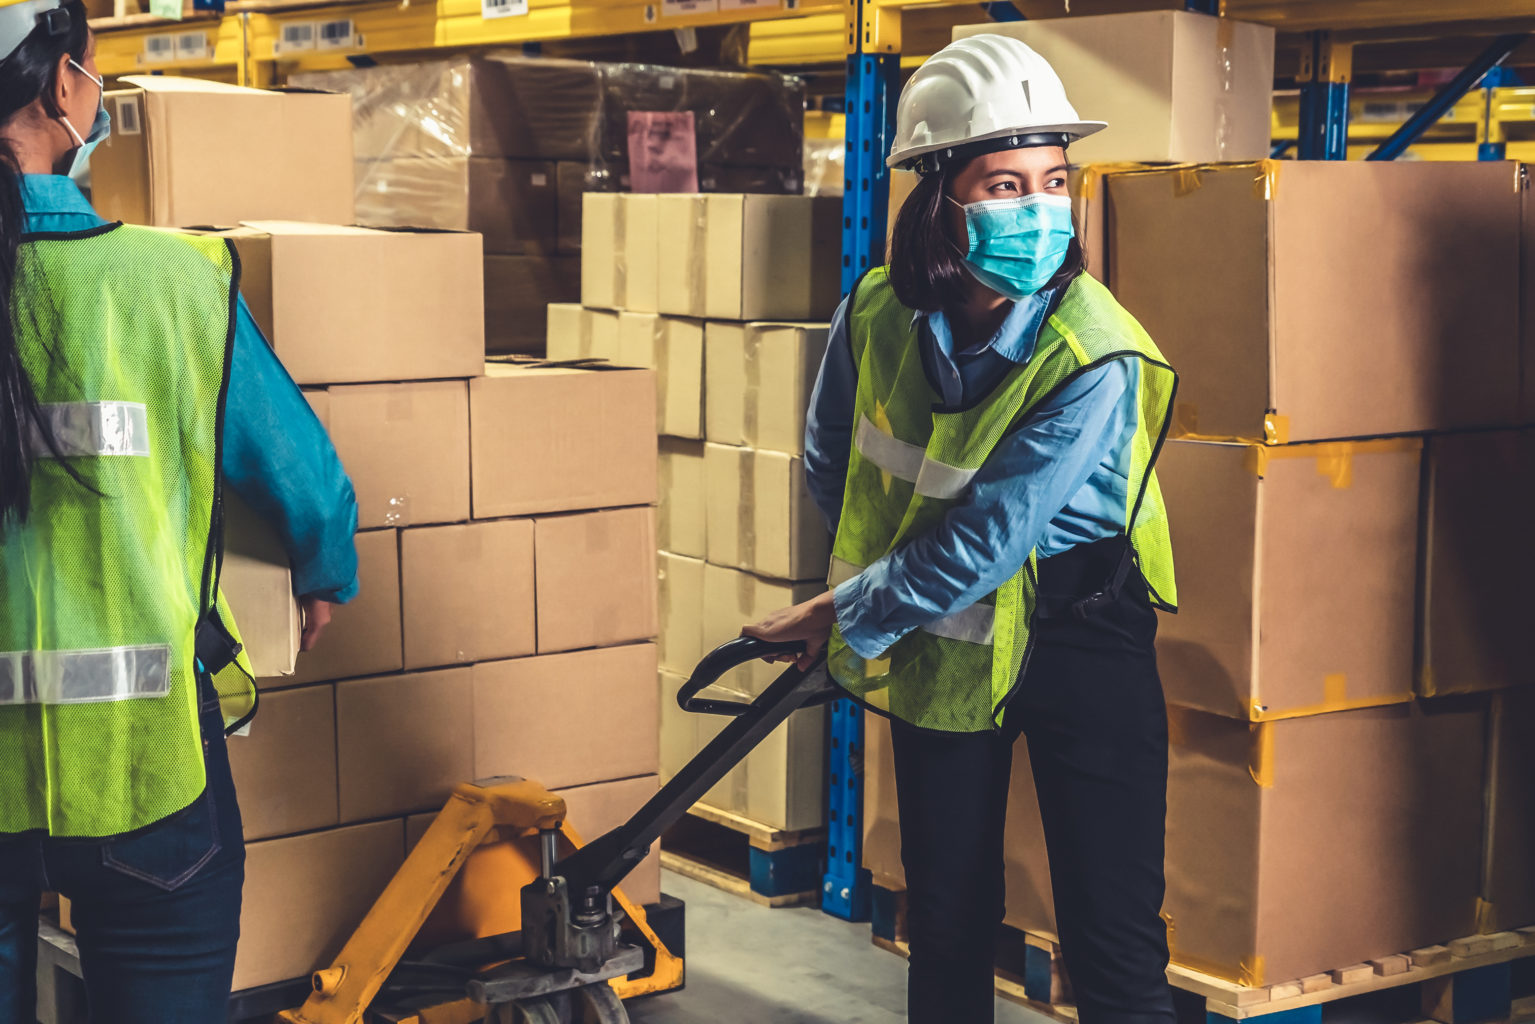 Factory Industry Worker Working With Face Mask To Prevent Covid 19